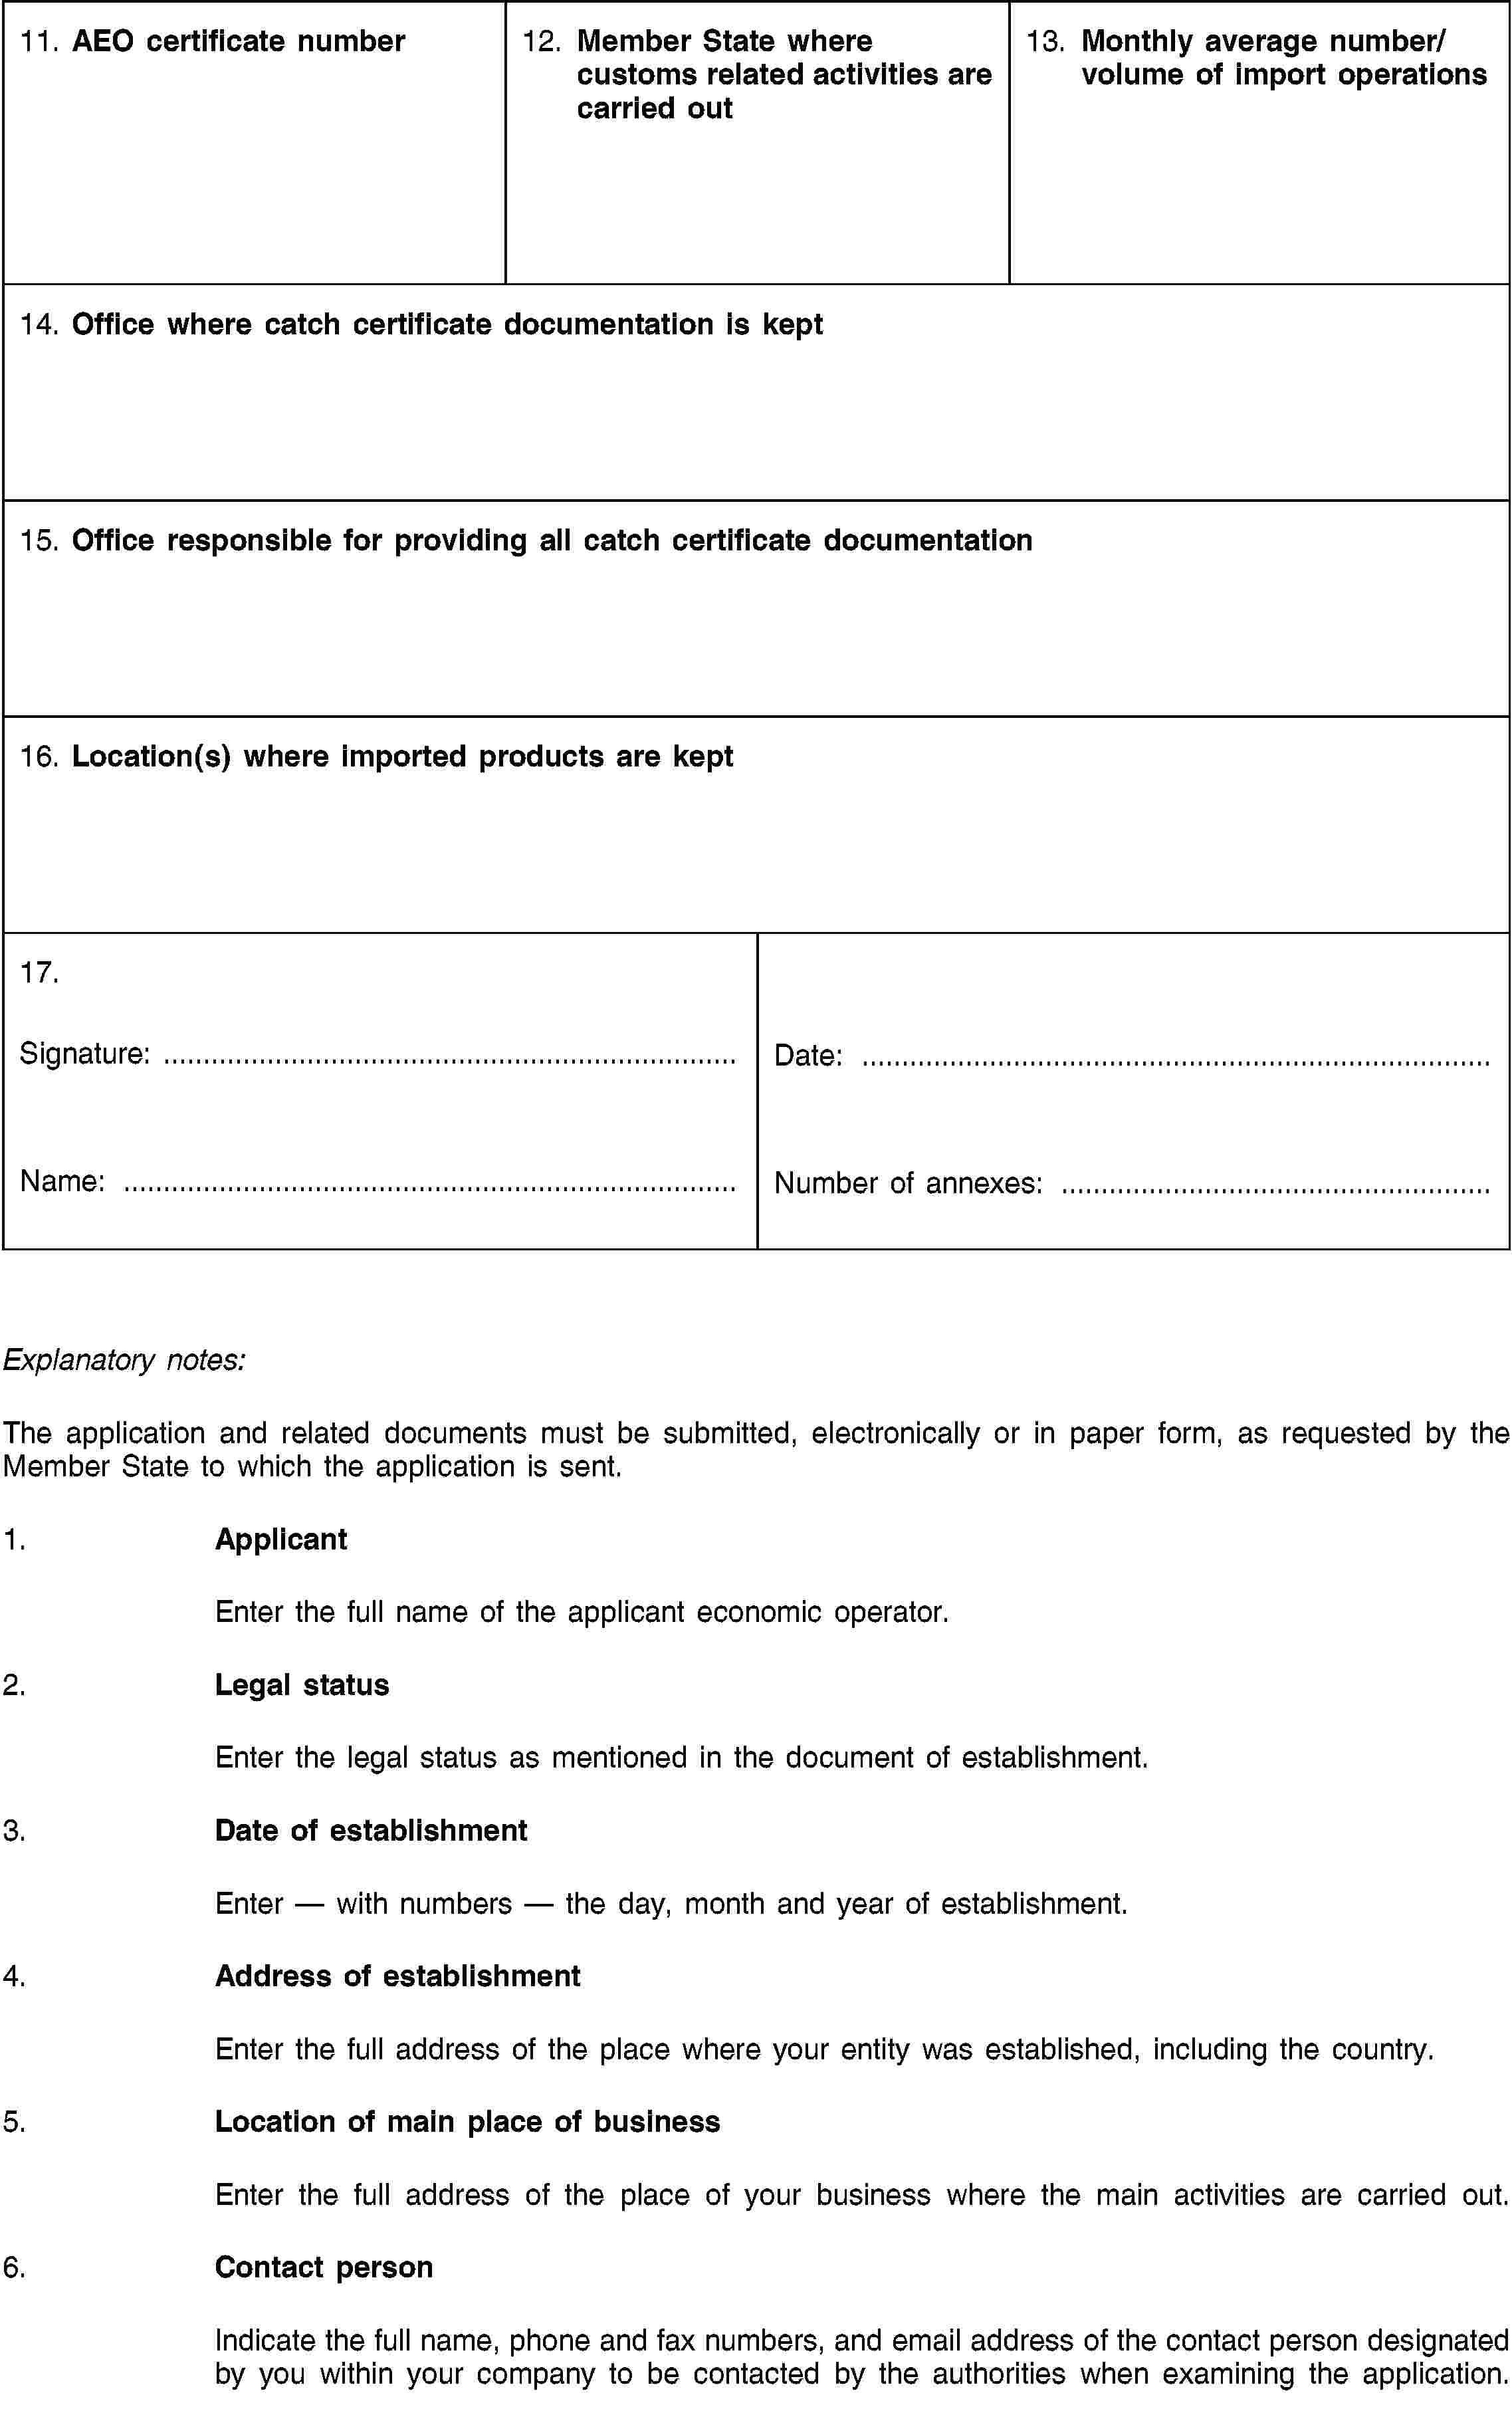 11. AEO certificate number12. Member State where customs related activities are carried out13. Monthly average number/volume of import operations14. Office where catch certificate documentation is kept15. Office responsible for providing all catch certificate documentation16. Location(s) where imported products are kept17.Signature: …Name: …Date: …Number of annexes: …Explanatory notes:The application and related documents must be submitted, electronically or in paper form, as requested by the Member State to which the application is sent.1. ApplicantEnter the full name of the applicant economic operator.2. Legal statusEnter the legal status as mentioned in the document of establishment.3. Date of establishmentEnter — with numbers — the day, month and year of establishment.4. Address of establishmentEnter the full address of the place where your entity was established, including the country.5. Location of main place of businessEnter the full address of the place of your business where the main activities are carried out.6. Contact personIndicate the full name, phone and fax numbers, and email address of the contact person designated by you within your company to be contacted by the authorities when examining the application.